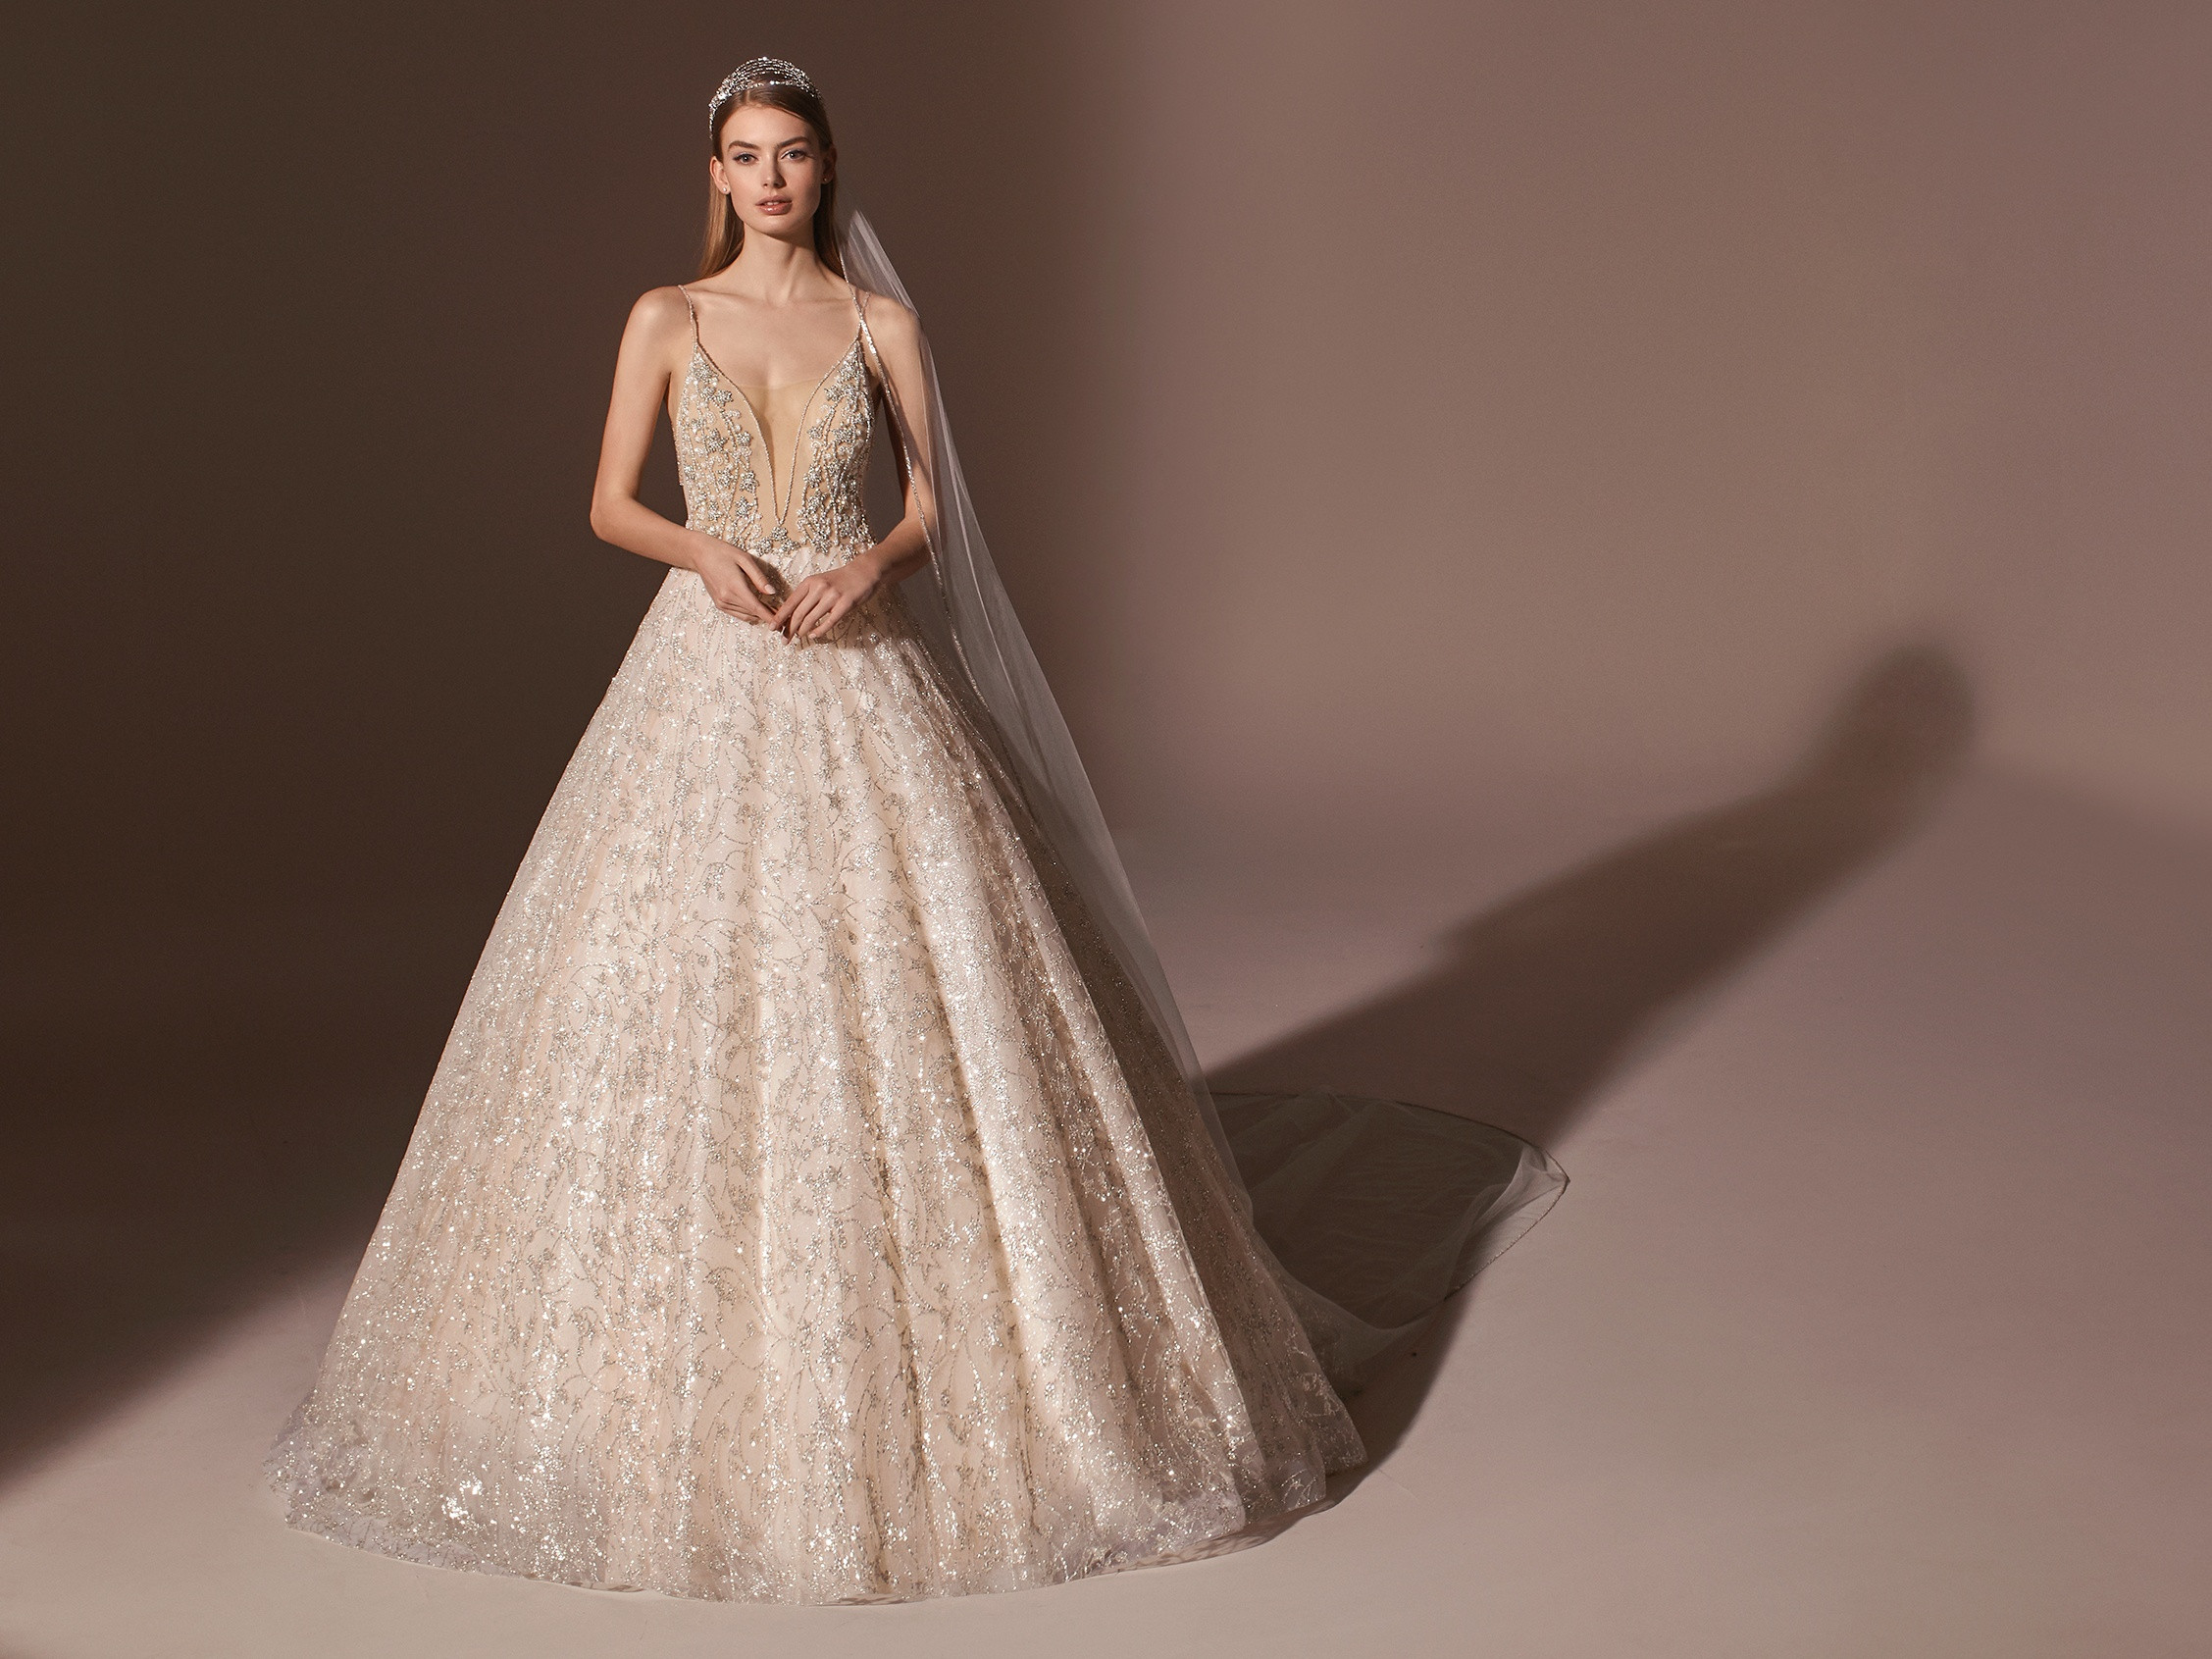 outlet online factory authentic wholesale price Mariage : tendance robe de mariée 2019 - Luxebytrendy